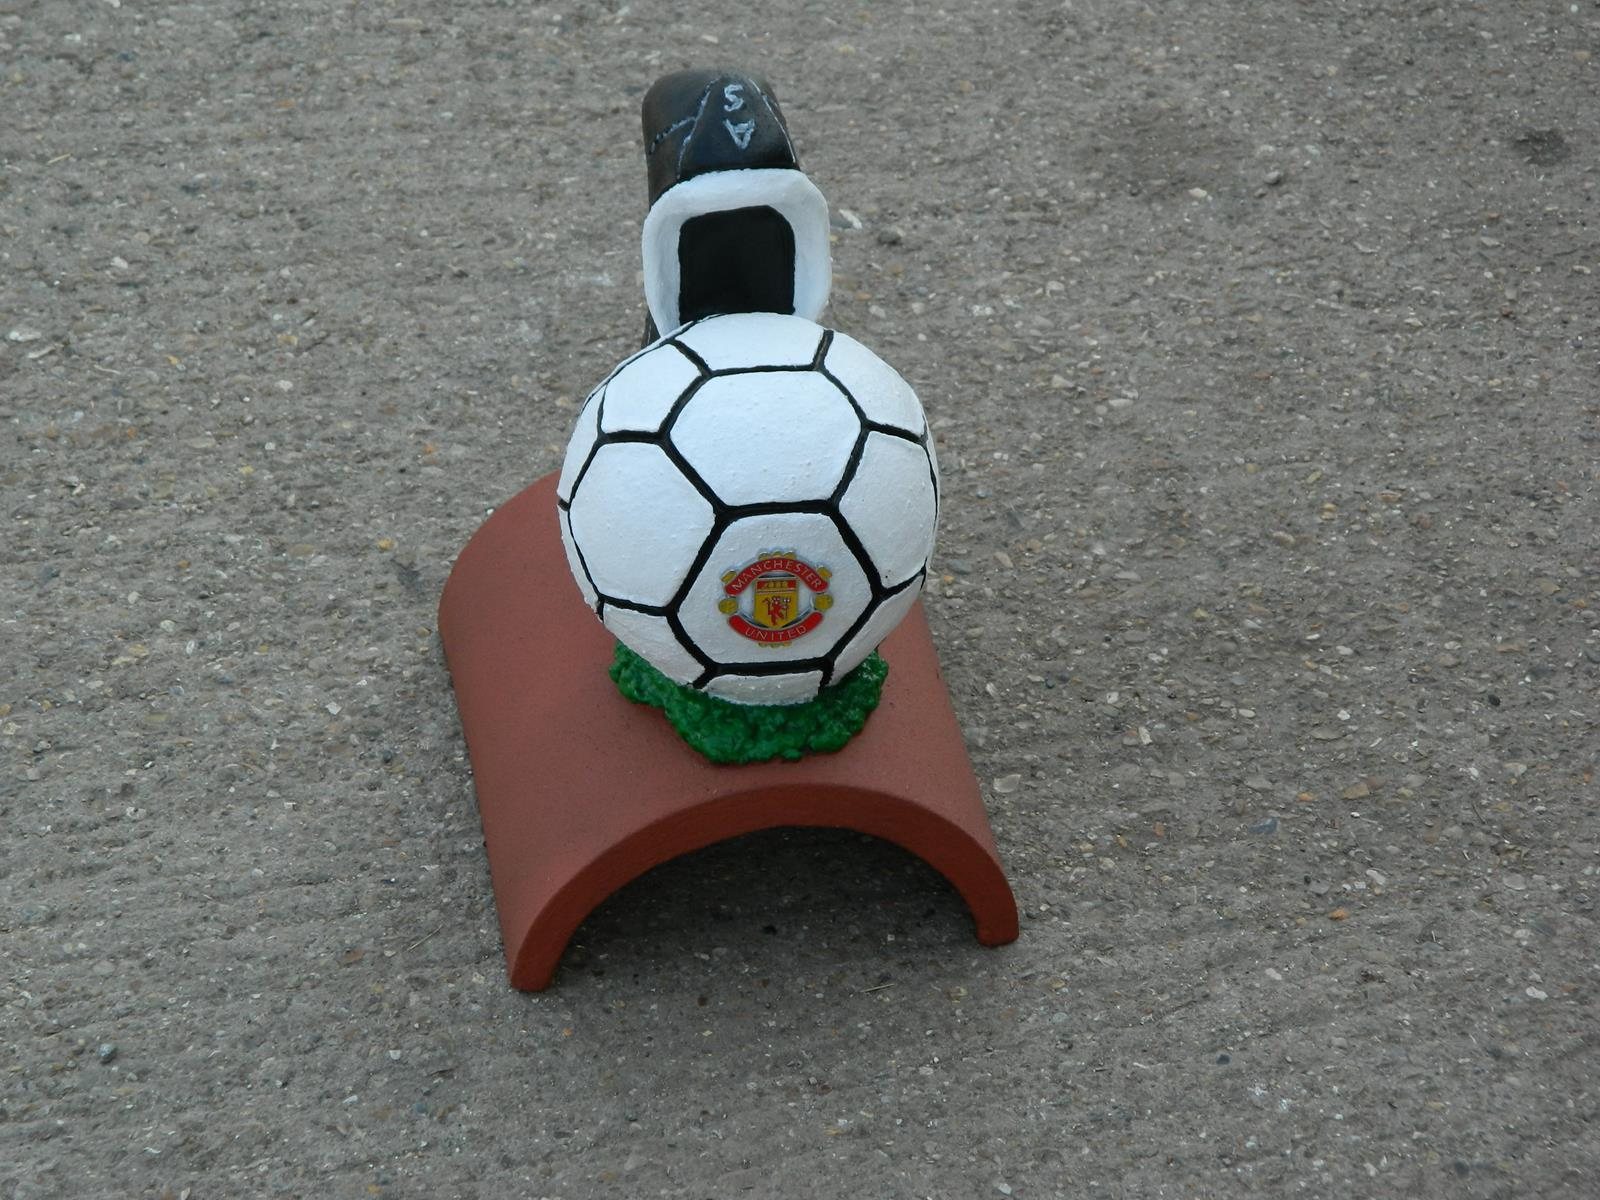 Manchester United handpainted football finial